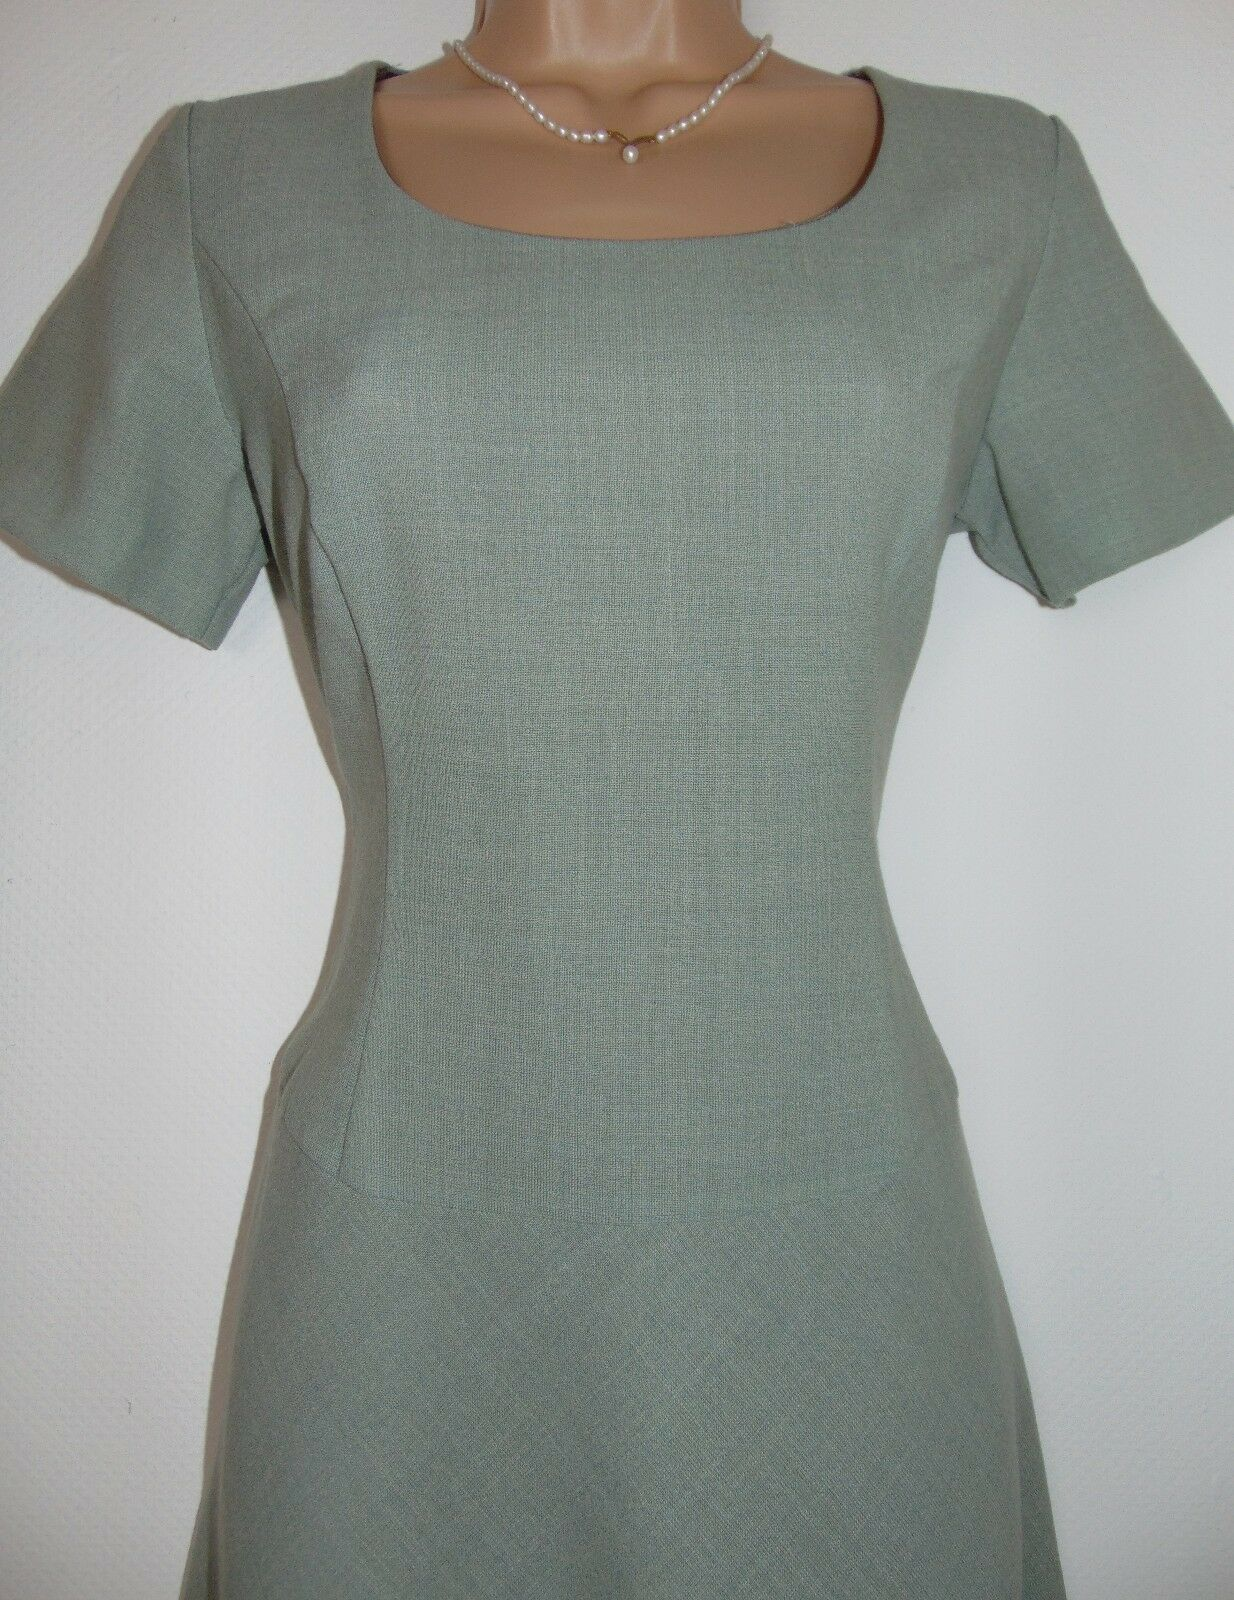 BNWT Laura Ashley Vintage Fine Wool, Smart Formal Office Knee Length Dress 12